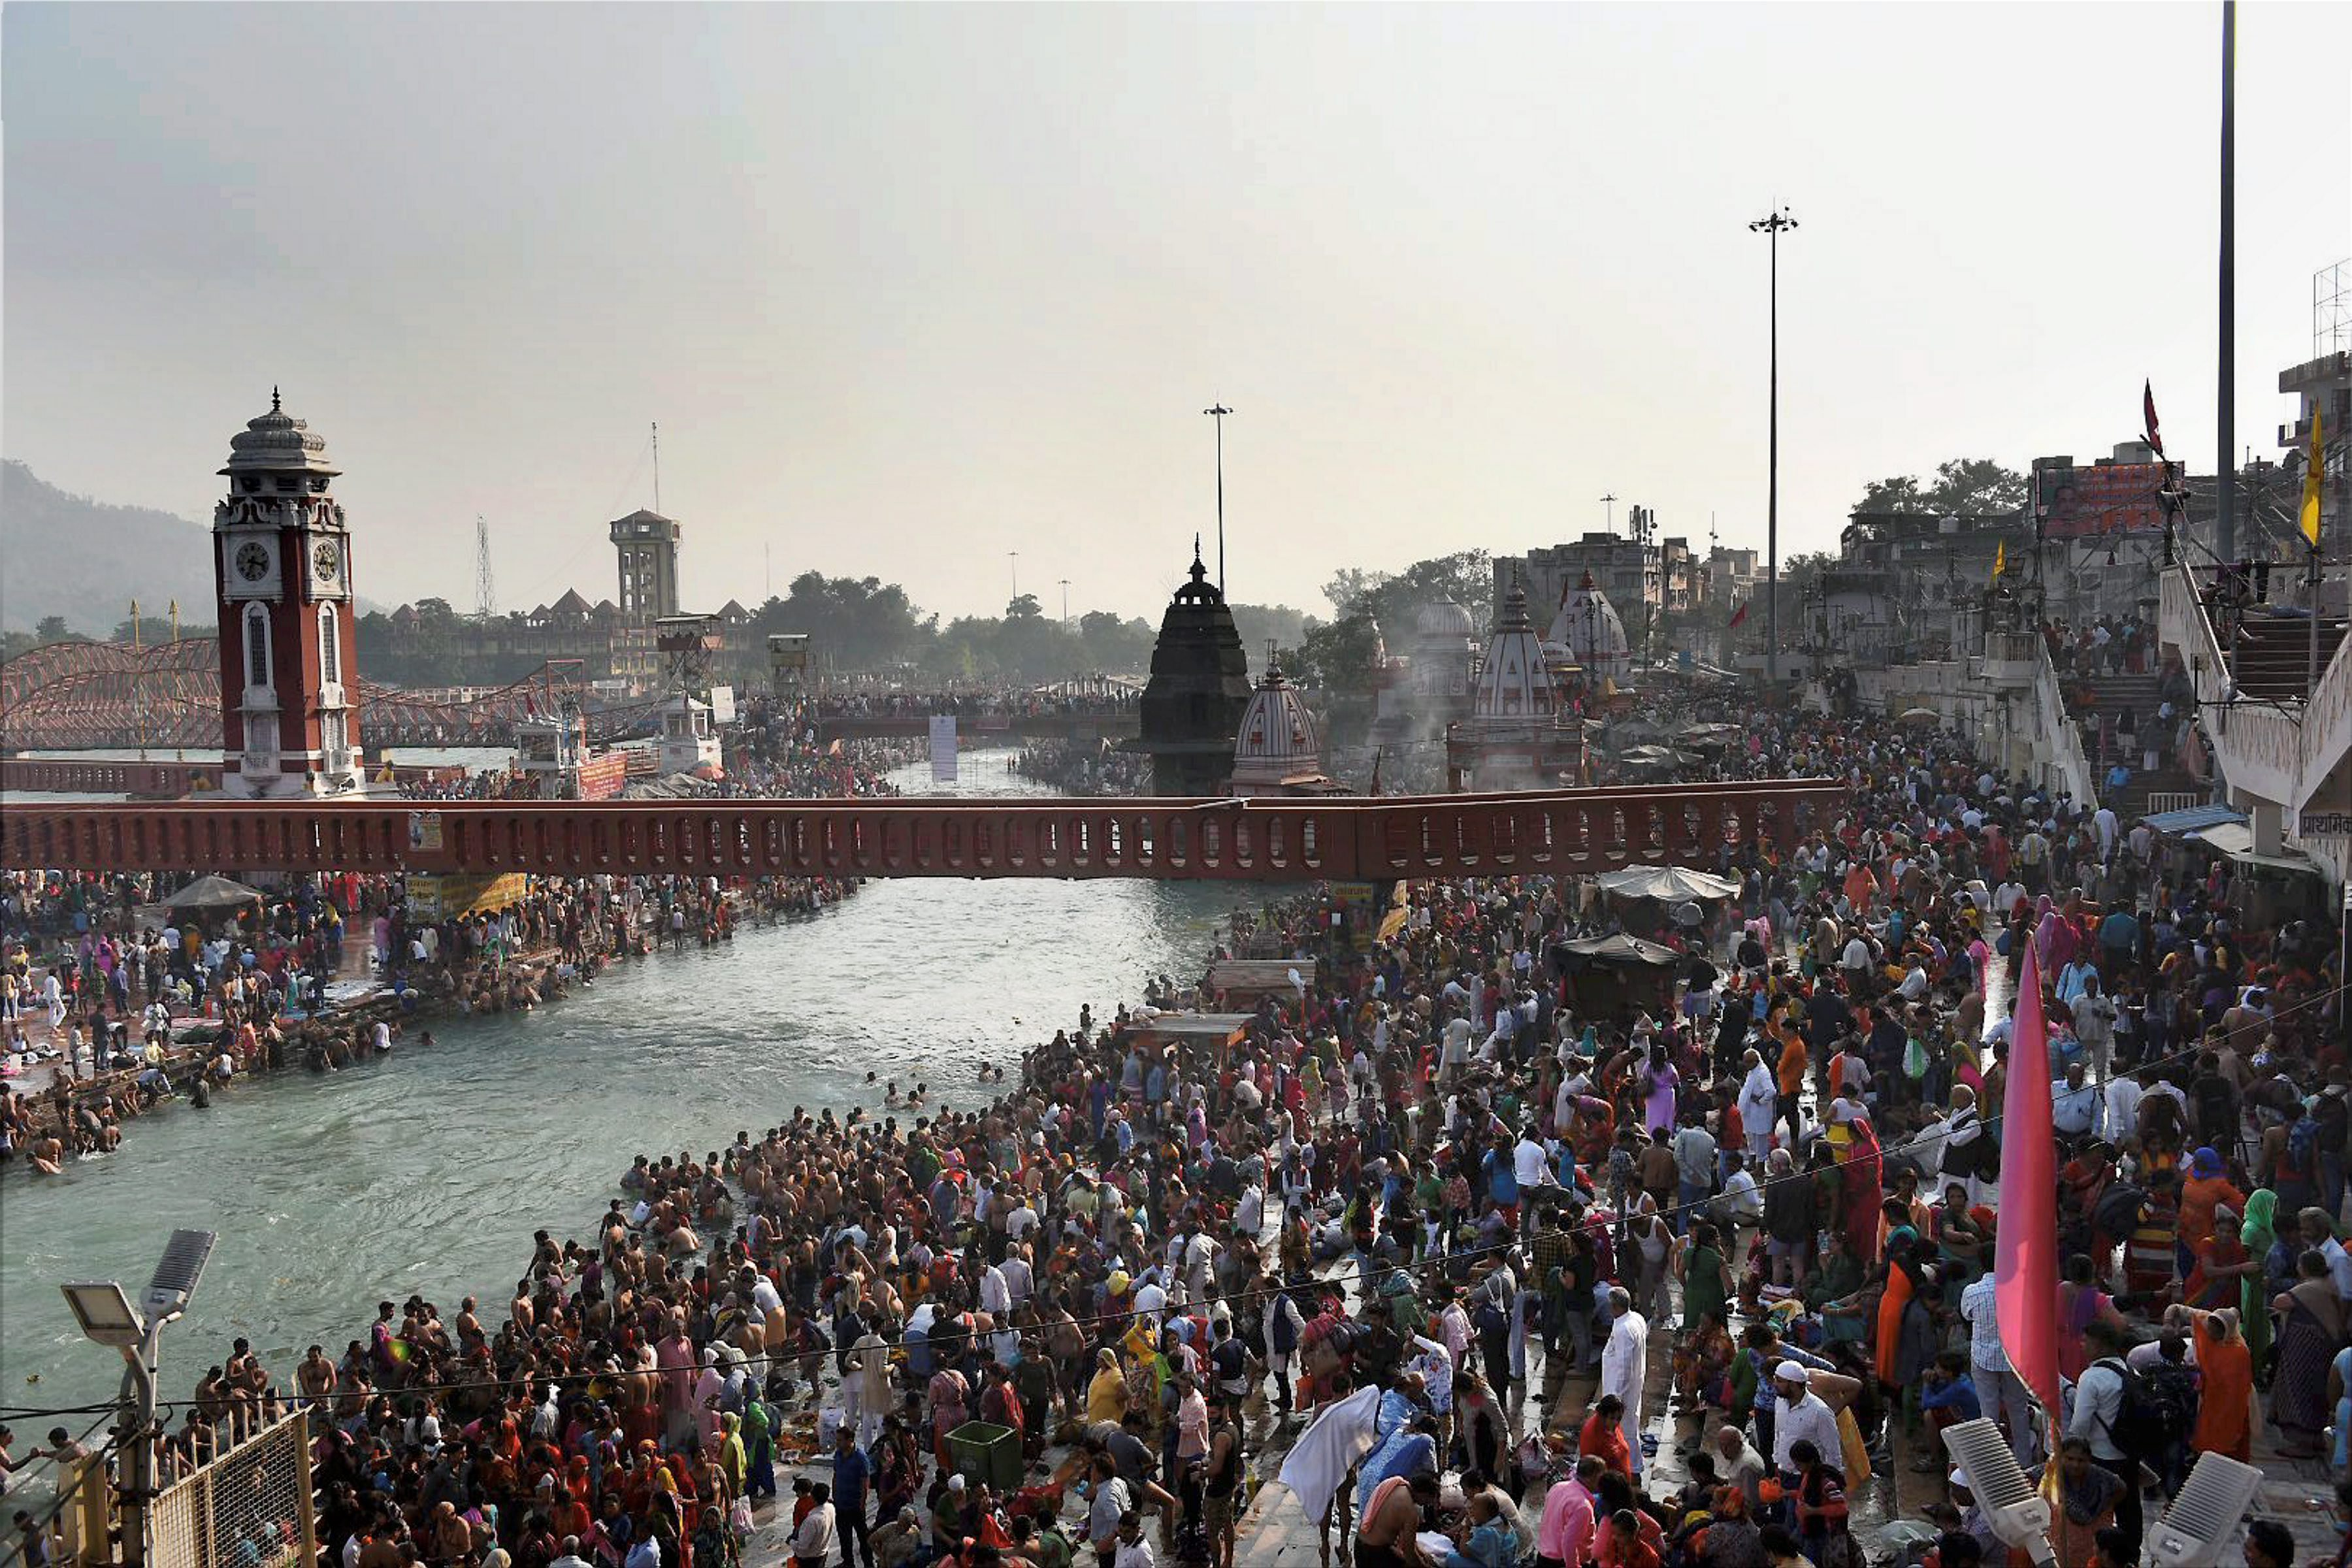 Haridwar's Har ki Paidi ghat by the Ganga is crowded with devotees there to offer prayers on Kartik Purnima. (Credit: PTI)